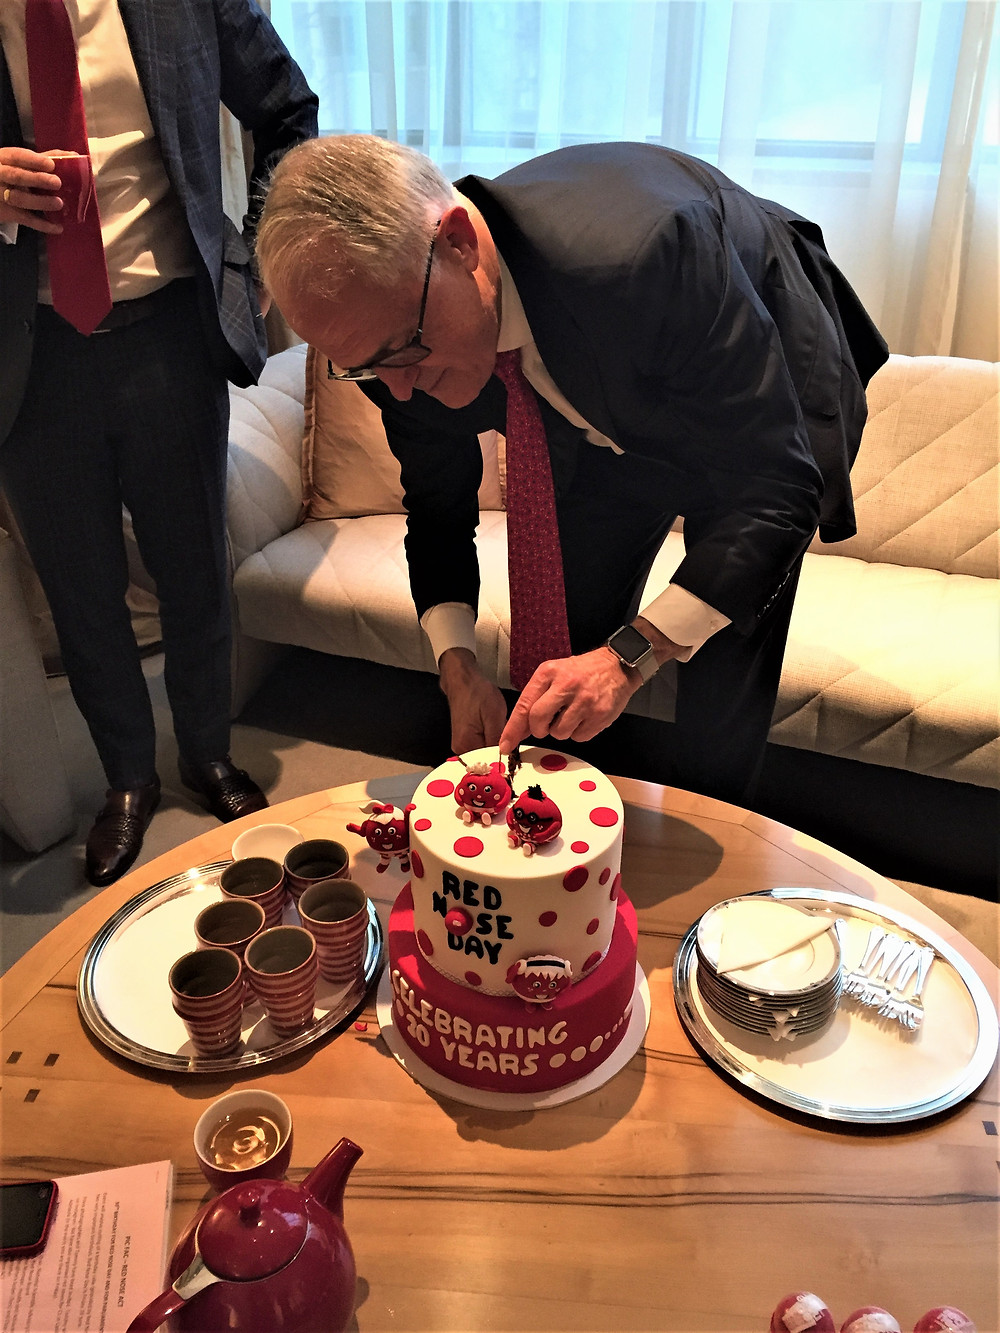 OMG! The PM cut my cake!